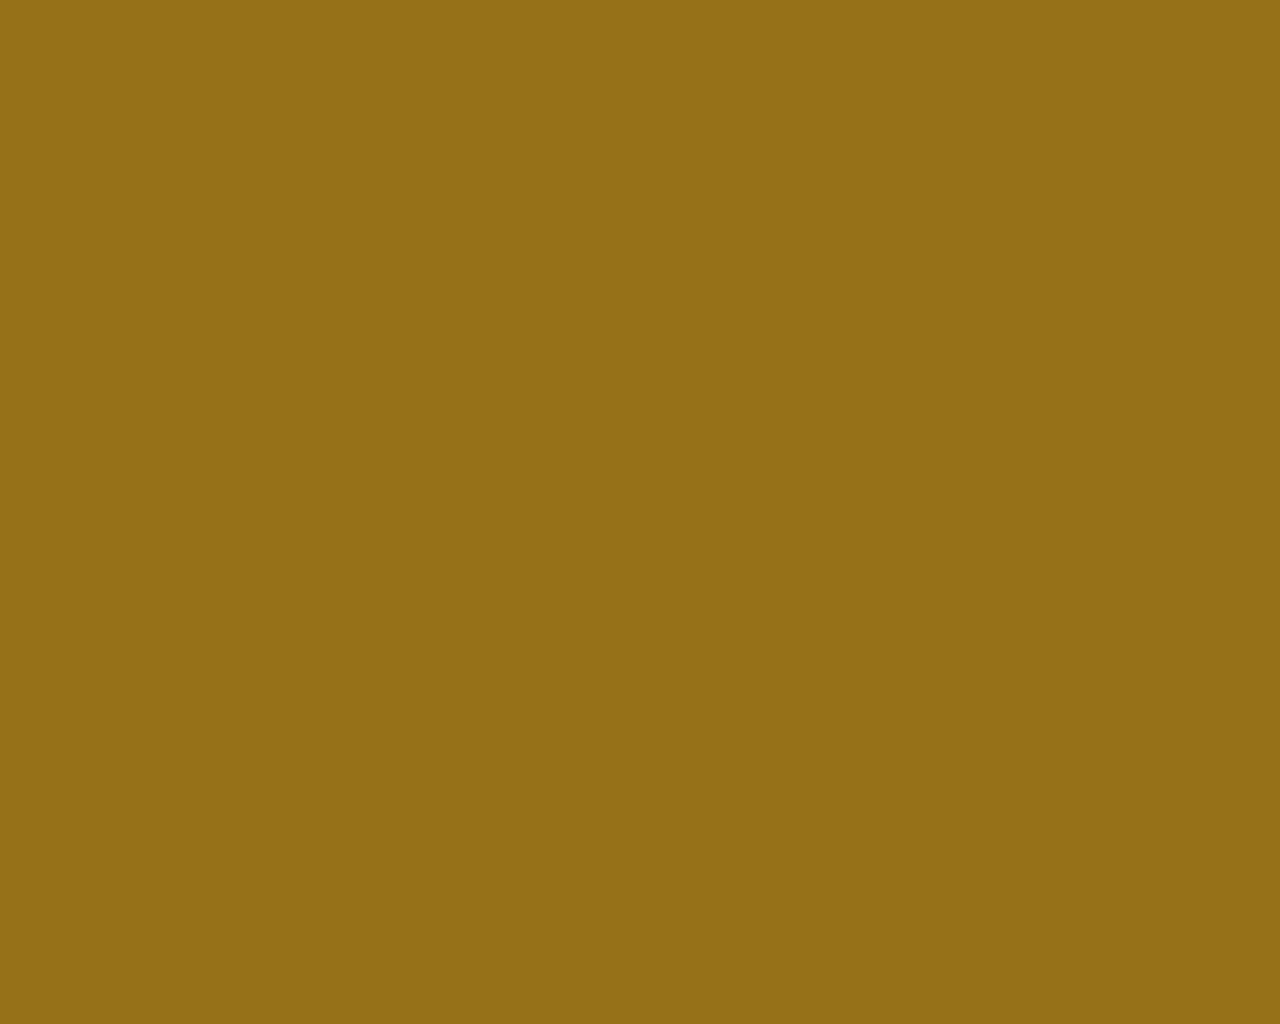 1280x1024 Drab Solid Color Background